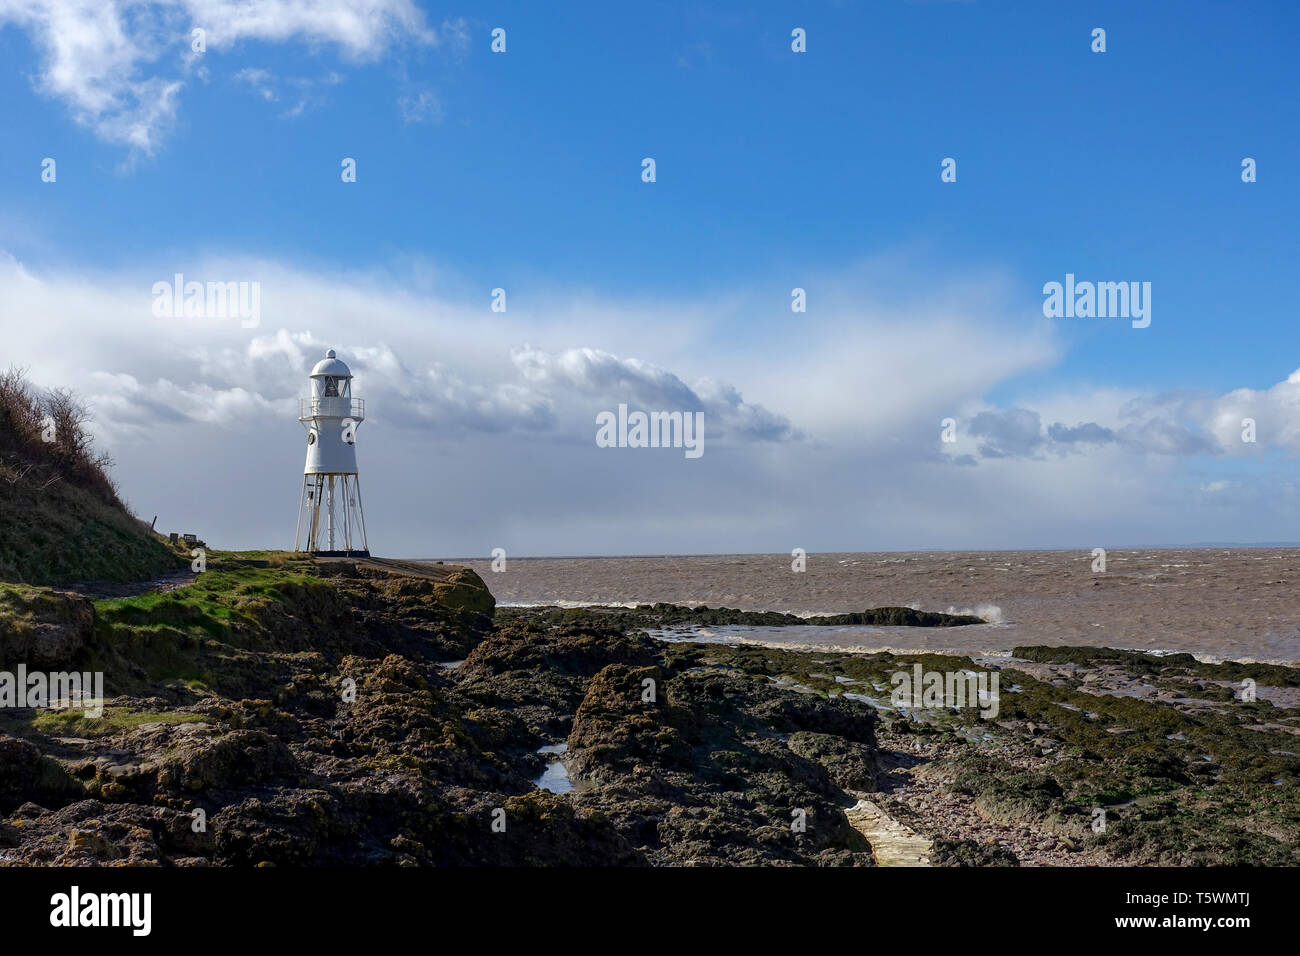 Black Nore lighthouse on the Bristol Channel at Portishead, somerset, UK. Now decommissioned the lighthouse is still a popular landmark for walkers. - Stock Image